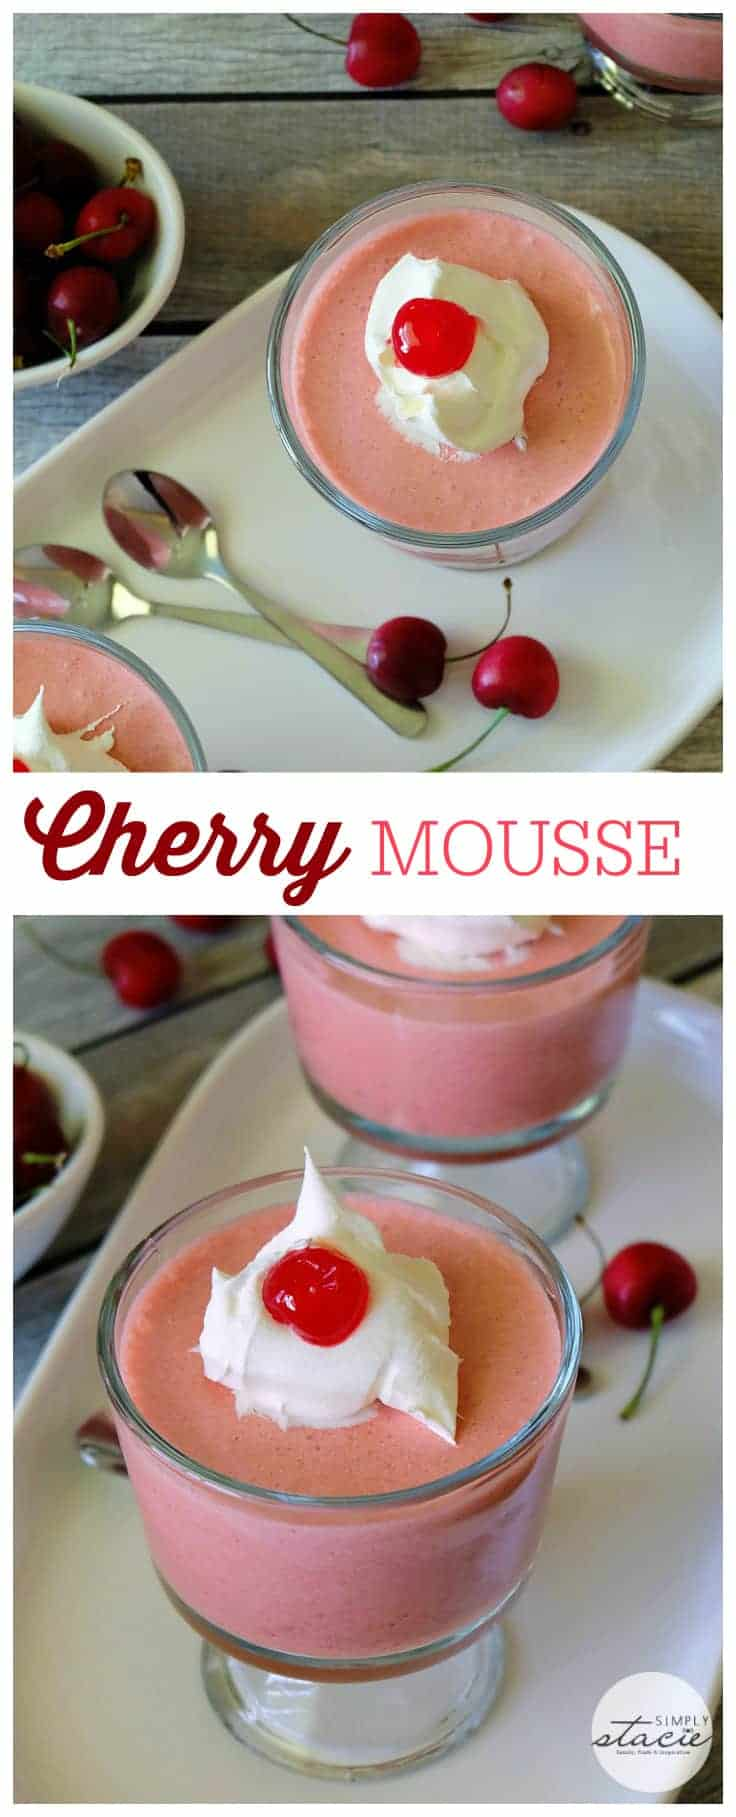 Cherry Mousse - a delightful no-bake dessert recipe made with fresh cherries, Jello, cream cheese and Cool Whip!